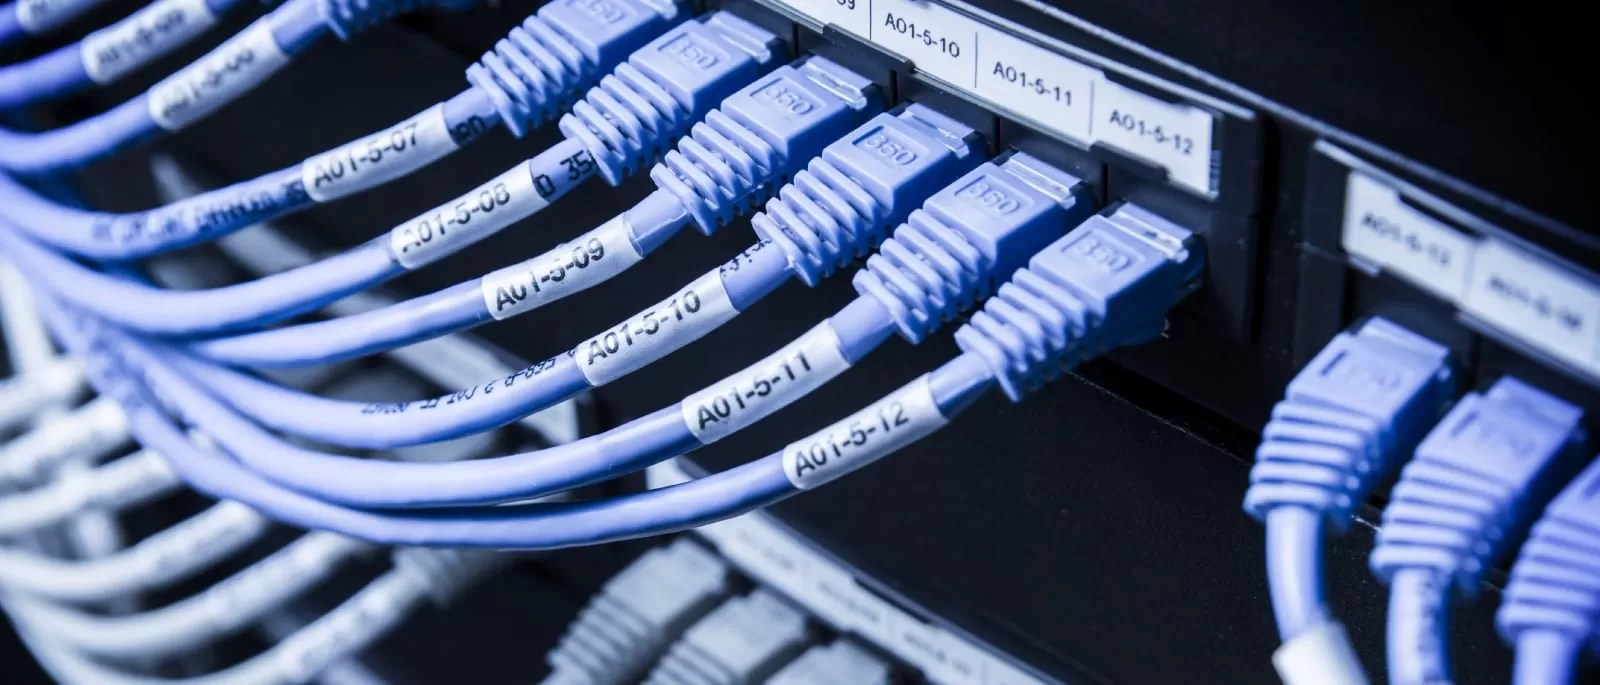 Networking Installation & Cable Management | Best Brothers ... on